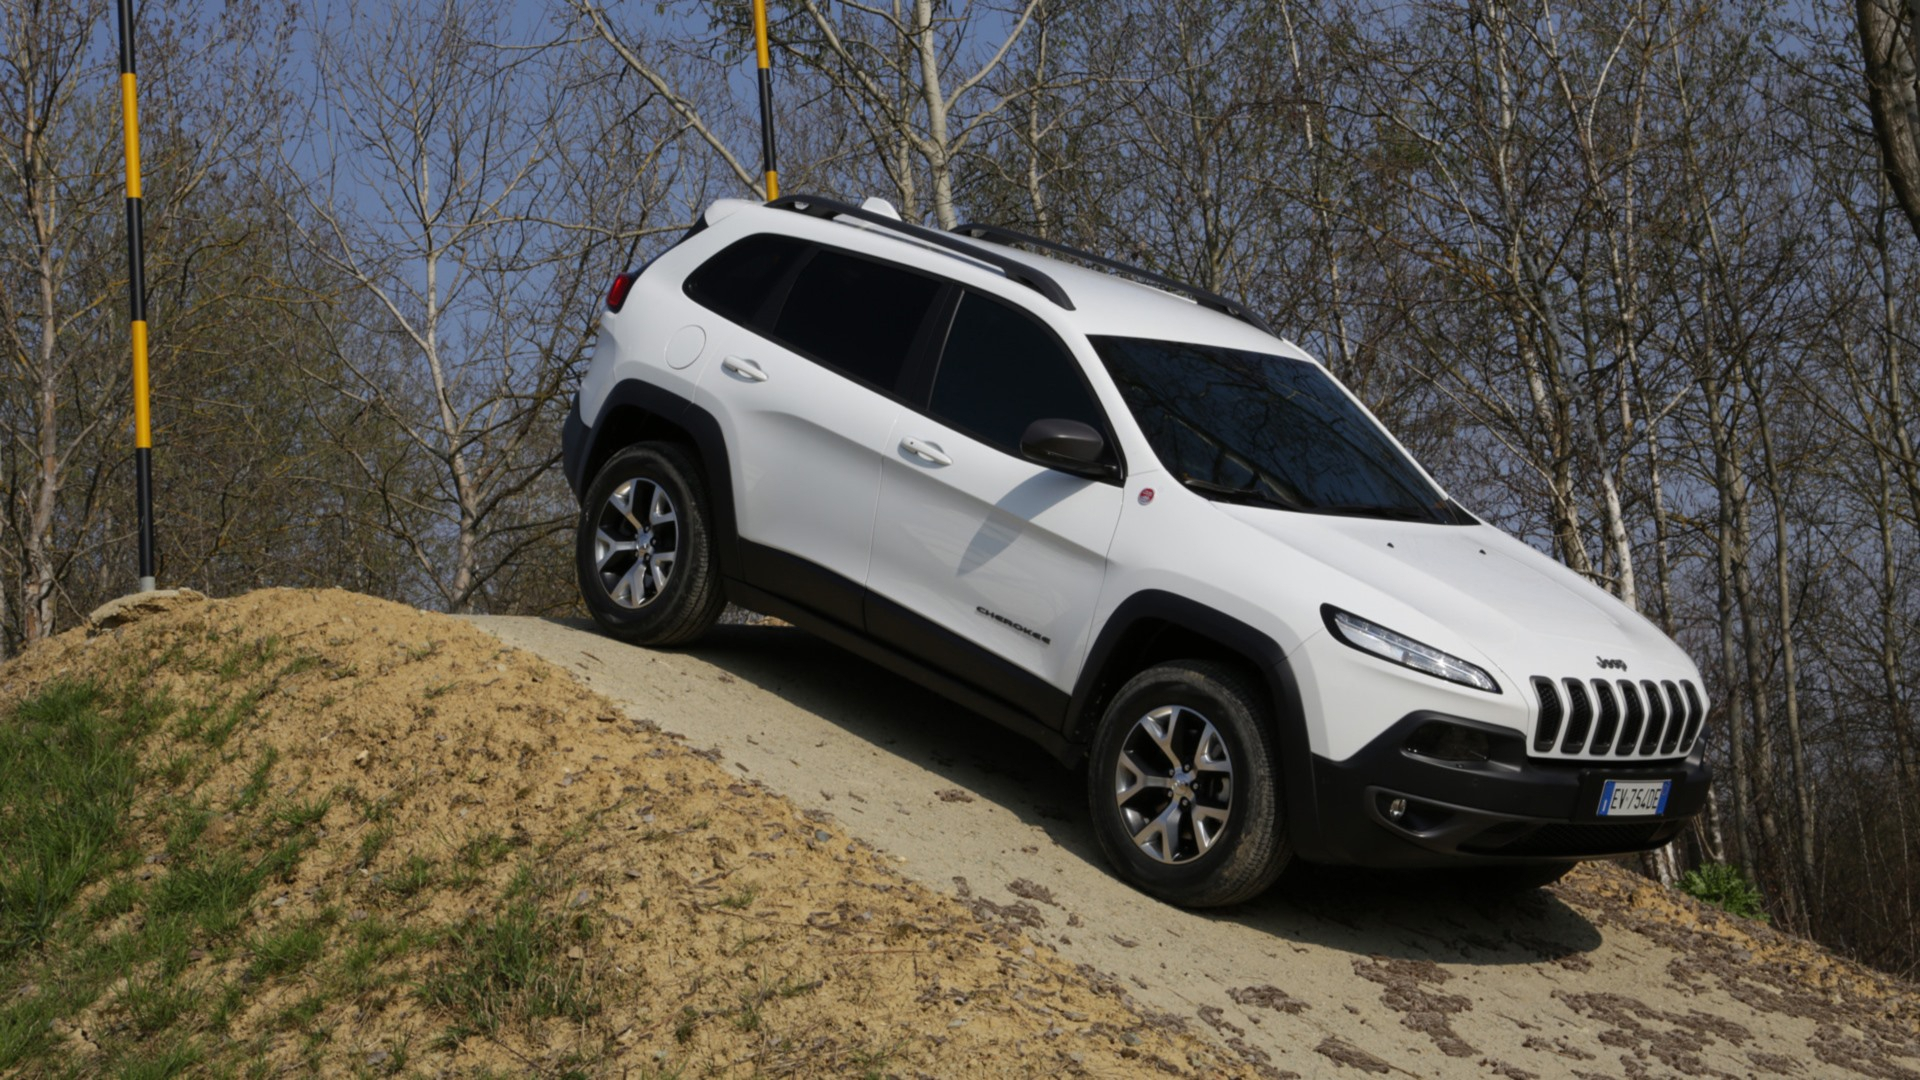 Jeep Cherokee Download Free Backgrounds Hd